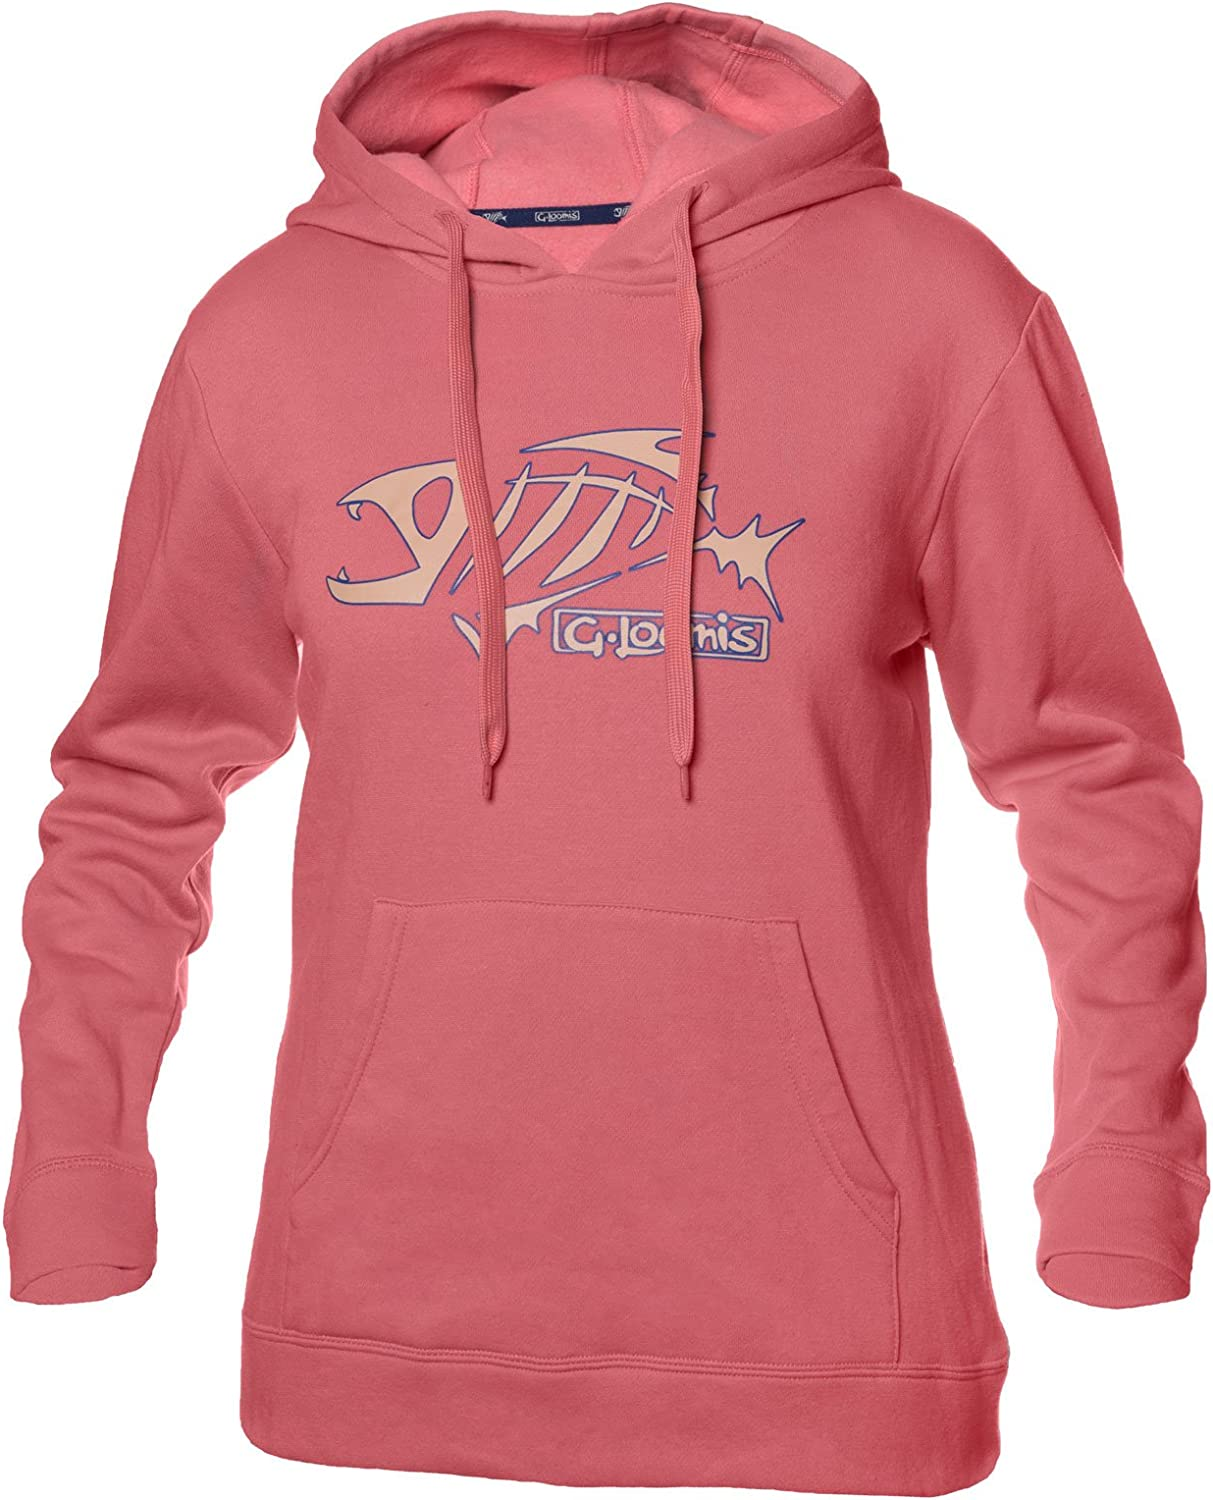 G. Loomis Womens Pull Over Hoodie Pink X Small